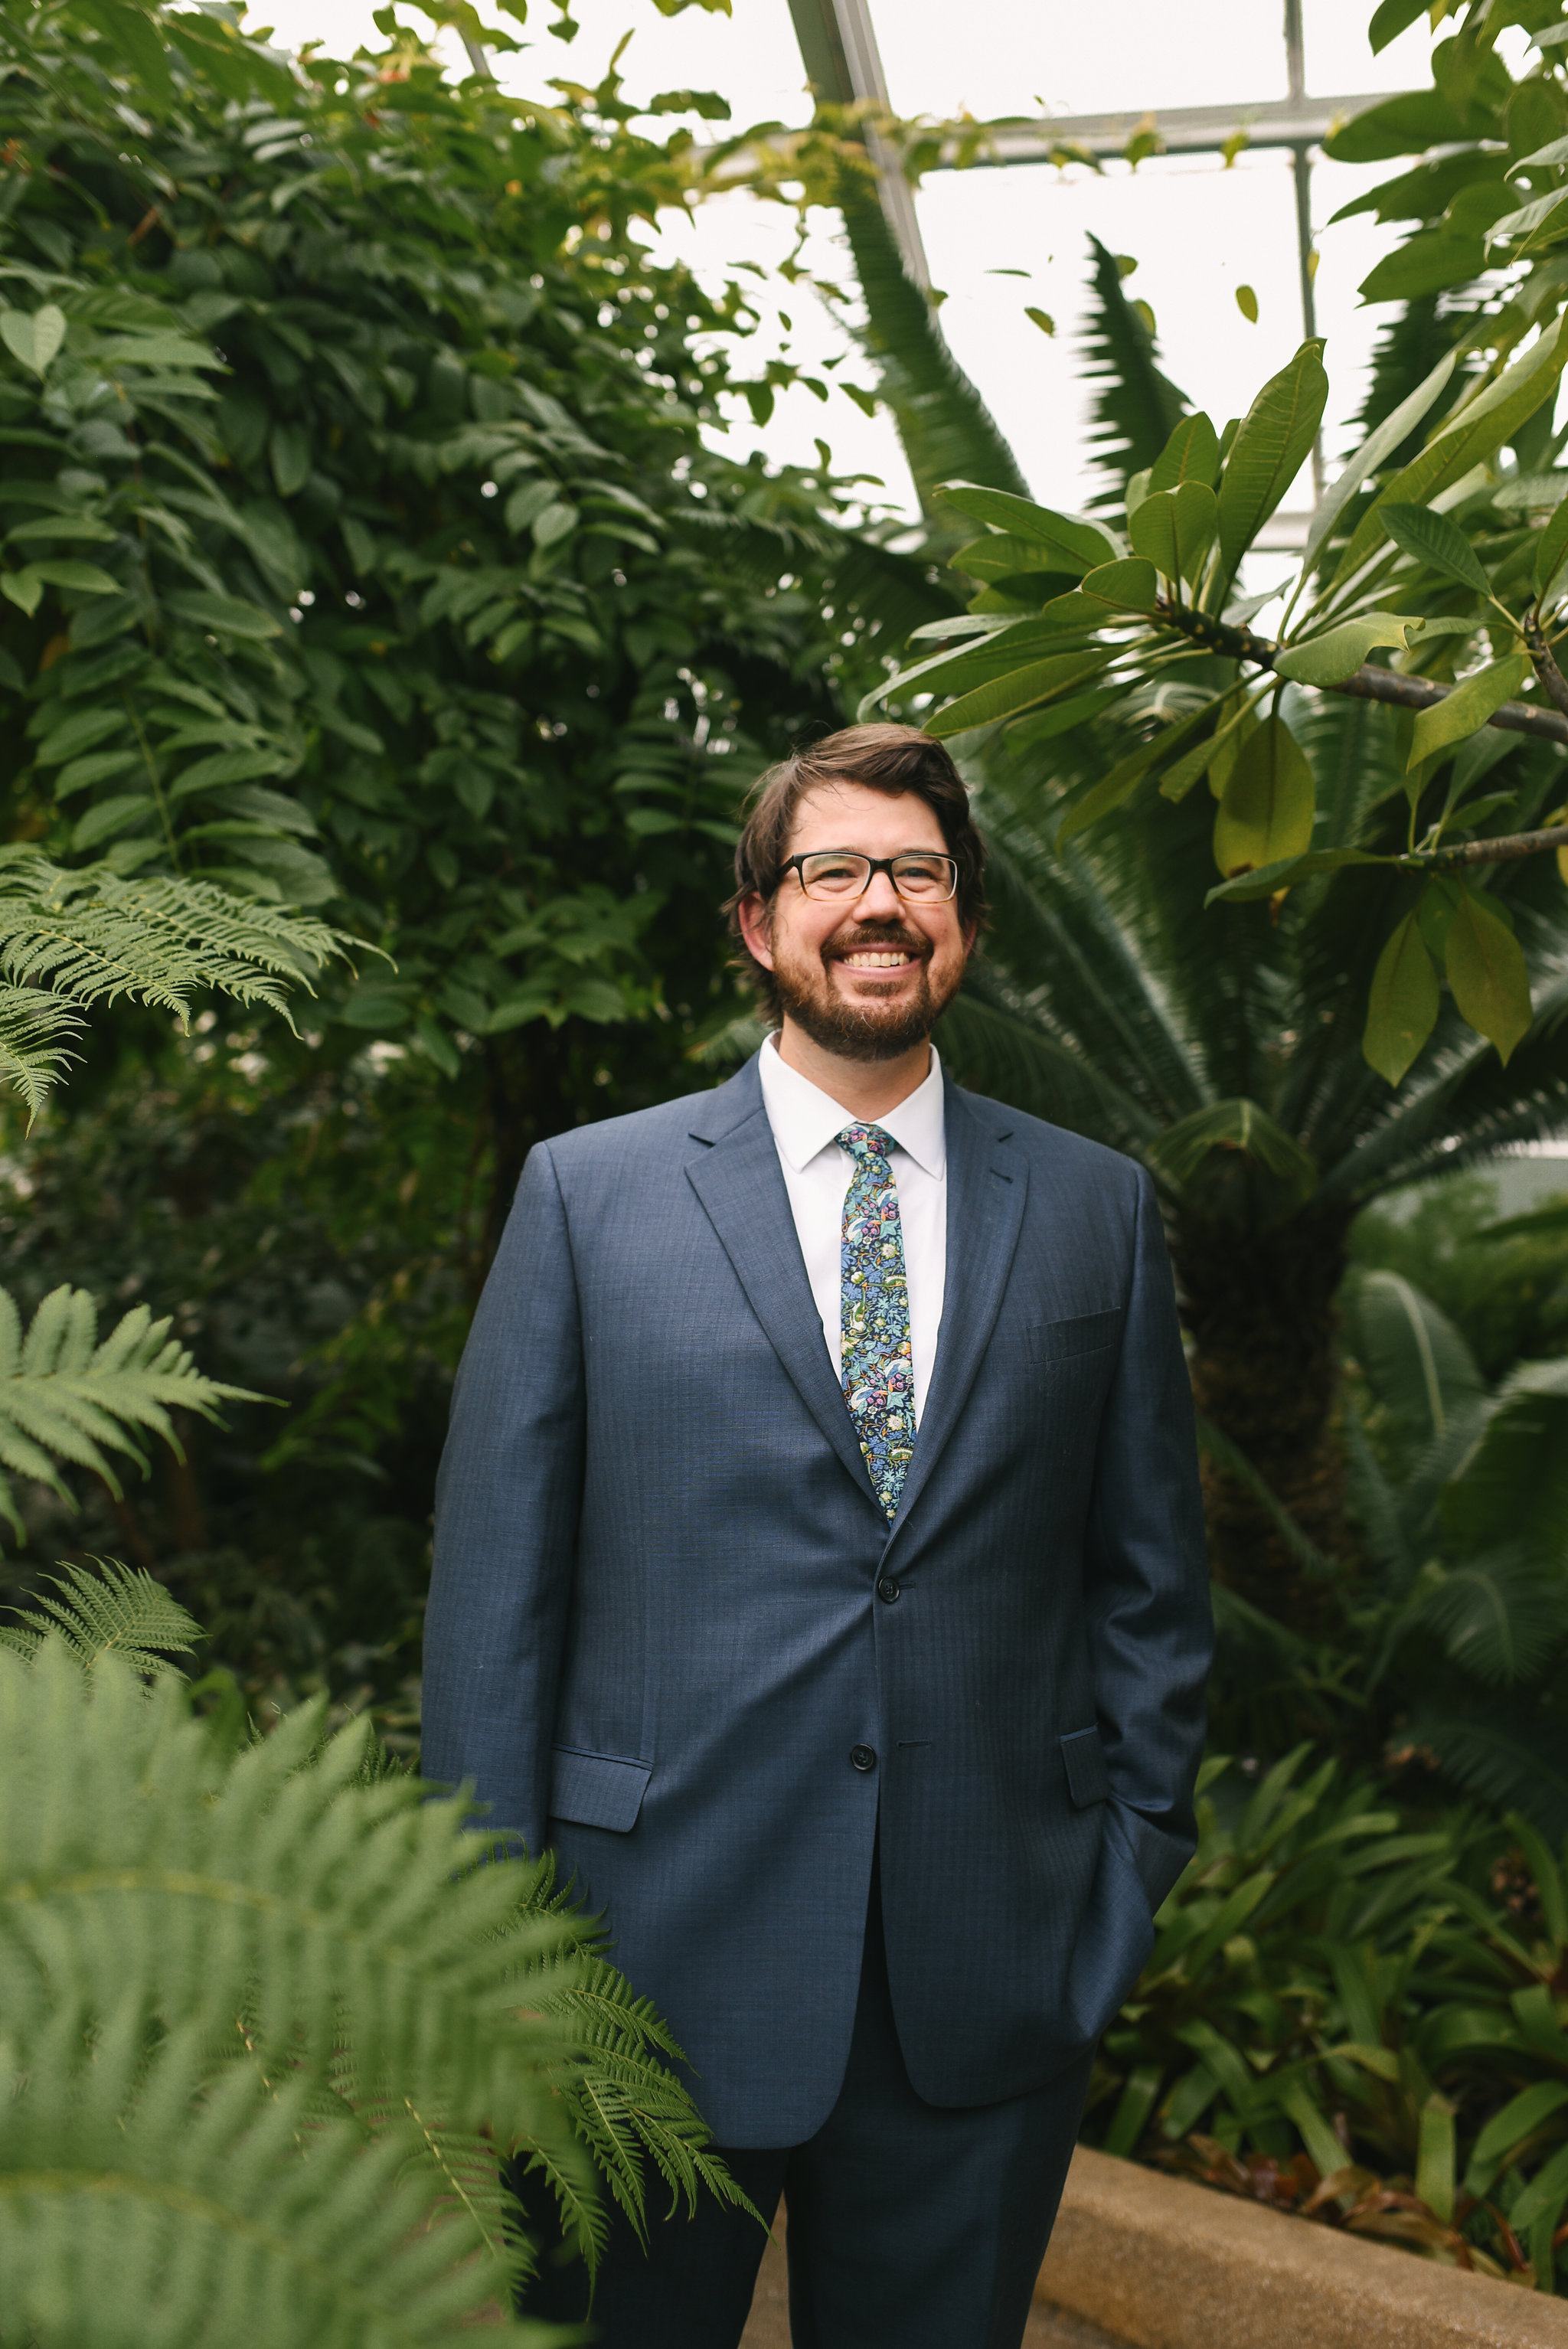 Rawlings Conservatory, Druid Hill Park, Intimate Wedding, Nature, Baltimore Wedding Photographer, Romantic, Classic, Portrait of Groom Among Trees, Floral Tie, Blue Groom's Suit